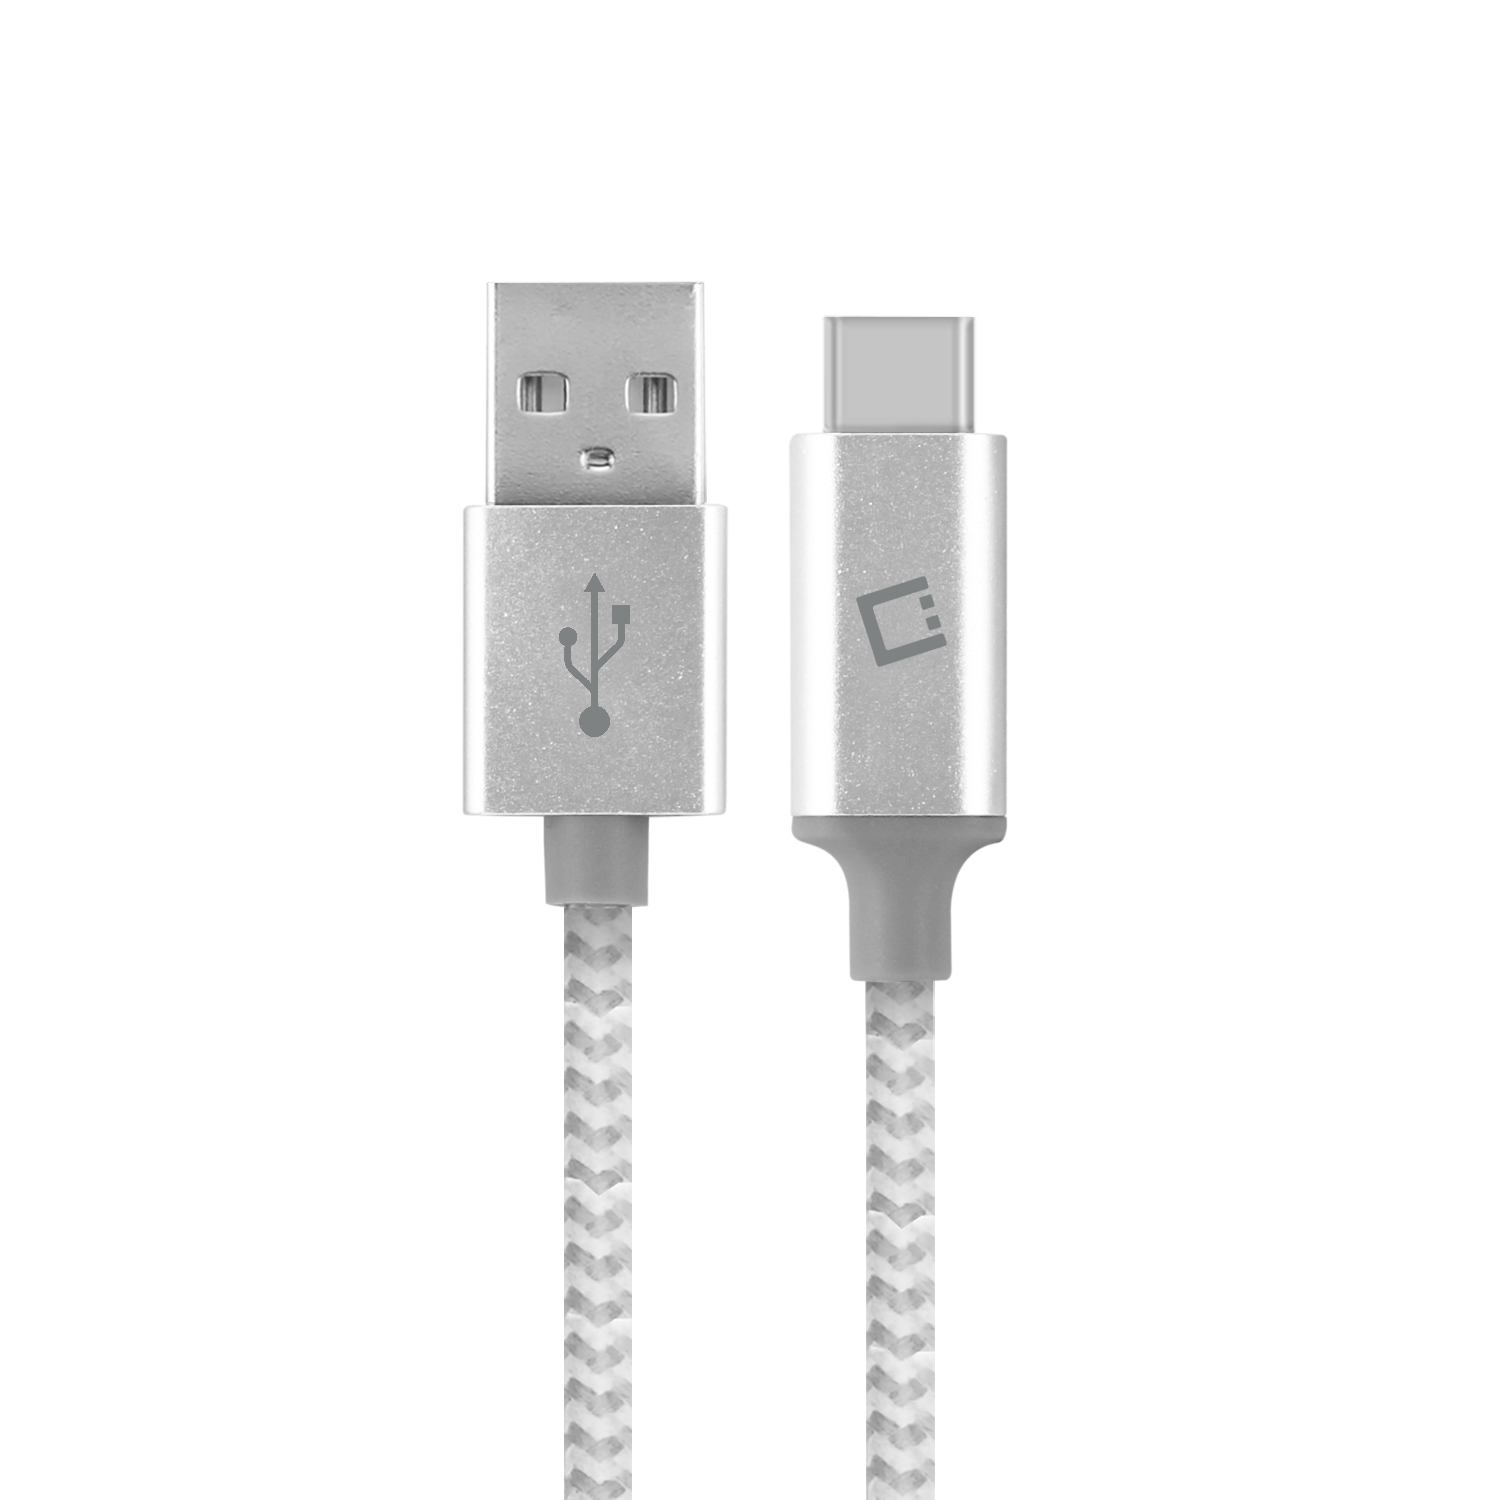 Sony Xperia XA1 USB Type-C To Type-A Braided Data Power Cable White 4ft Round